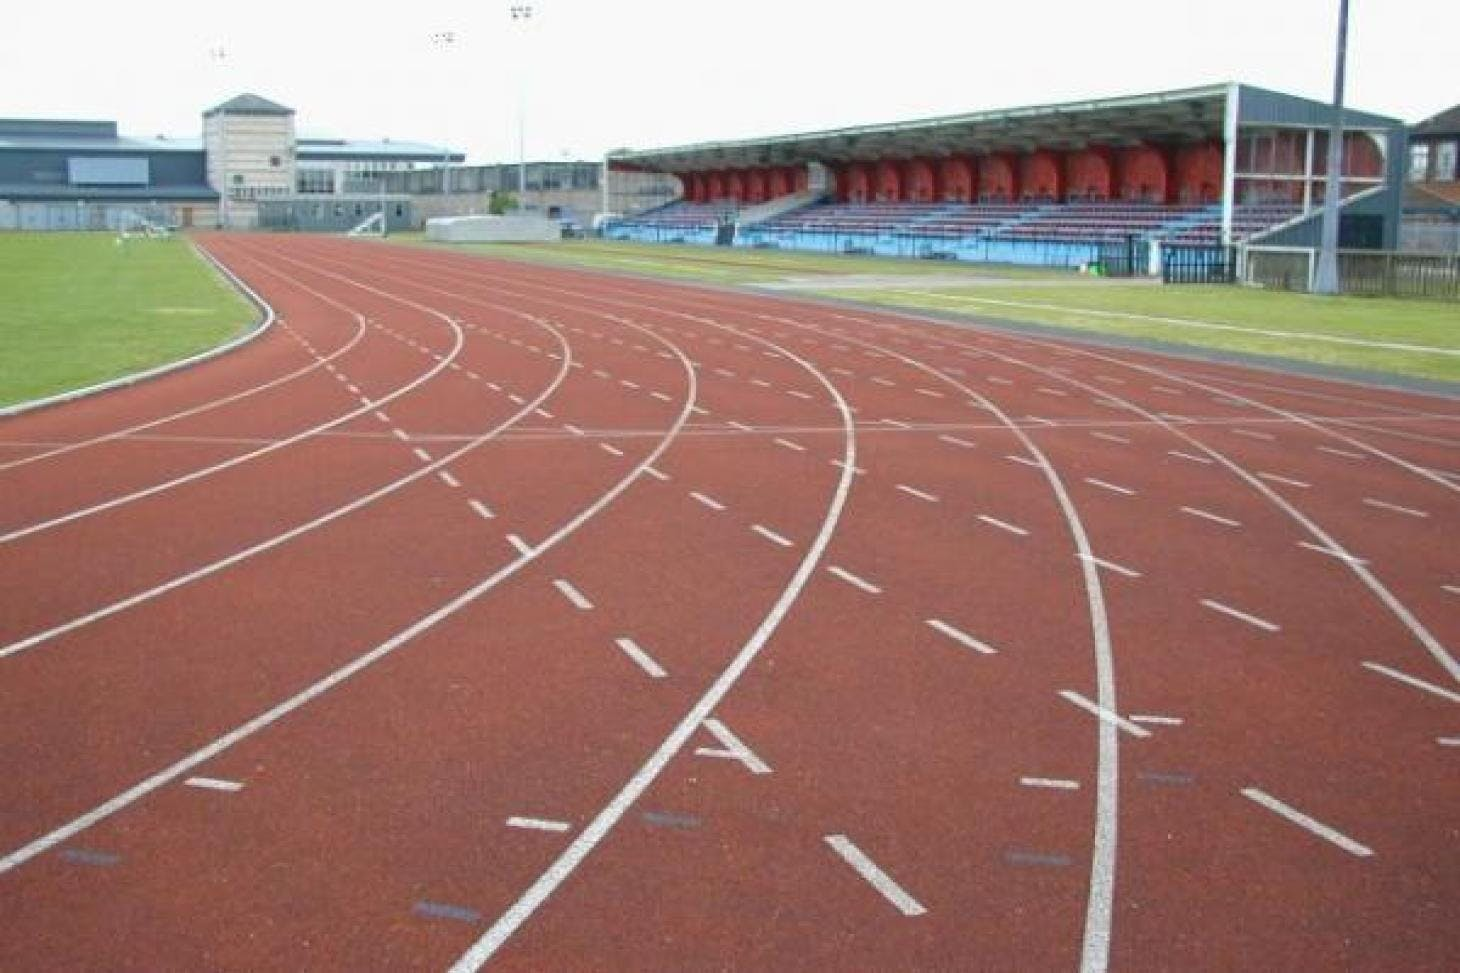 Terence McMillan Stadium Outdoor | Synthetic rubber athletics track